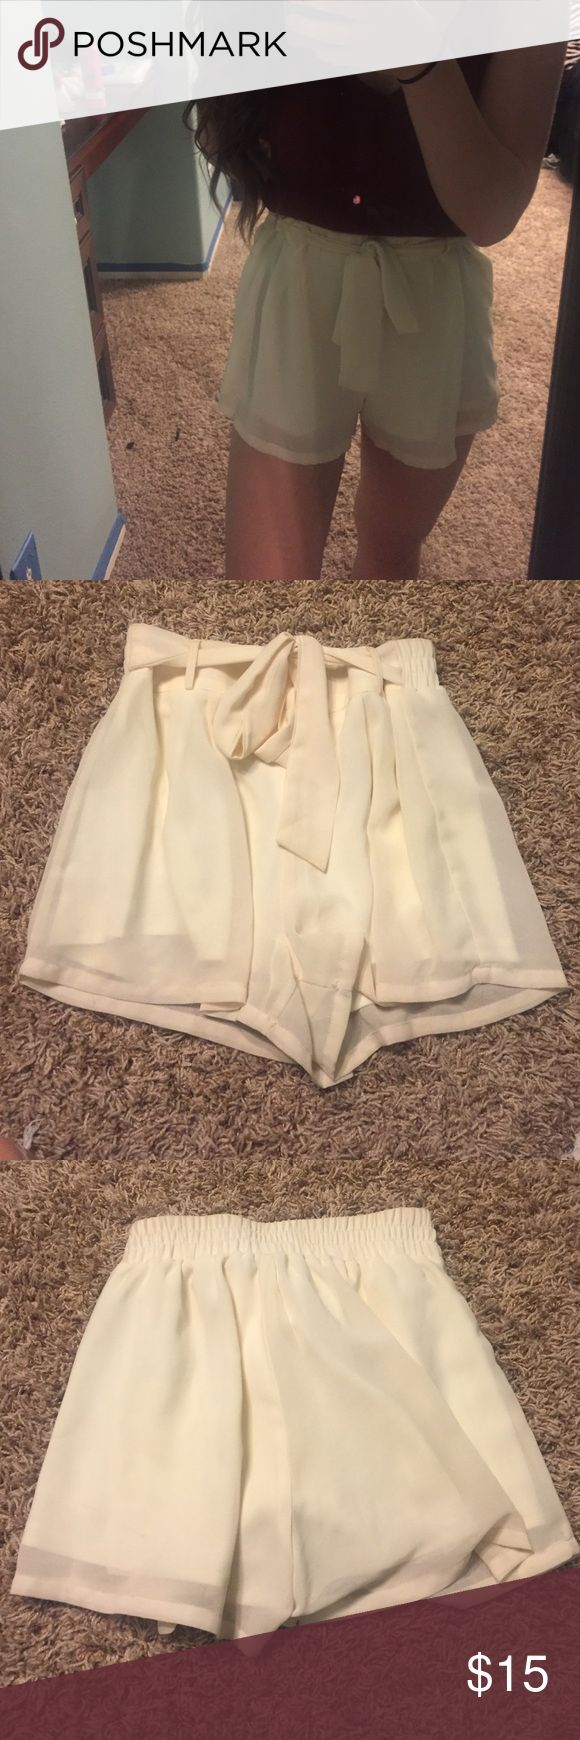 cream shorts option to wear high waisted or low rise. The how does untie to suit you. Super cute , usually worn with a black crop top & black gladiator sandals. I'd say it fits a small / medium because I am a small &  they are a medium. Feel free to make offers of course! Shorts